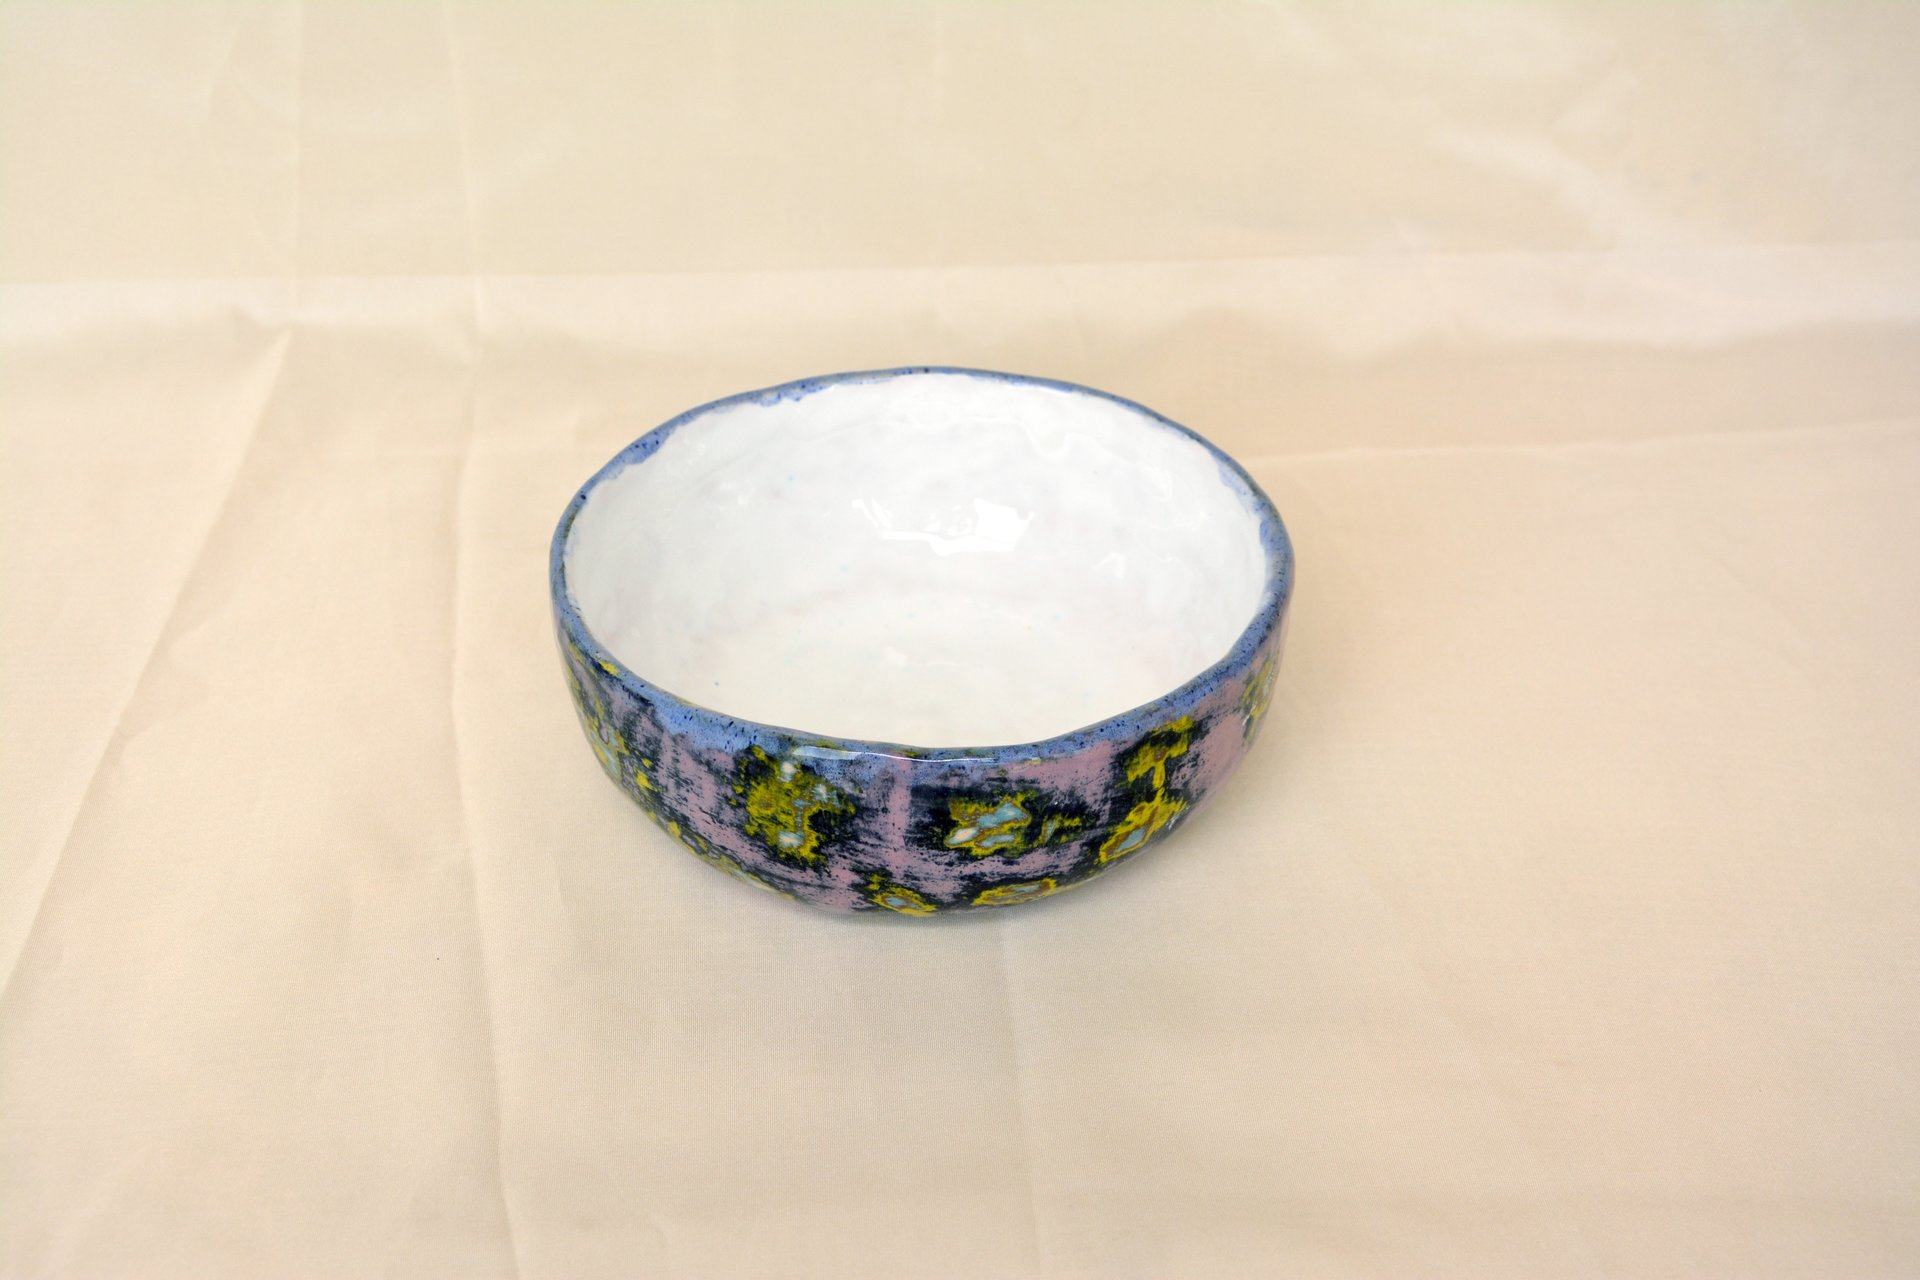 Multilayer lilac - Сeramic Plates, diameter - 14 cm, height - 5.5 cm, photo 2 of 3.